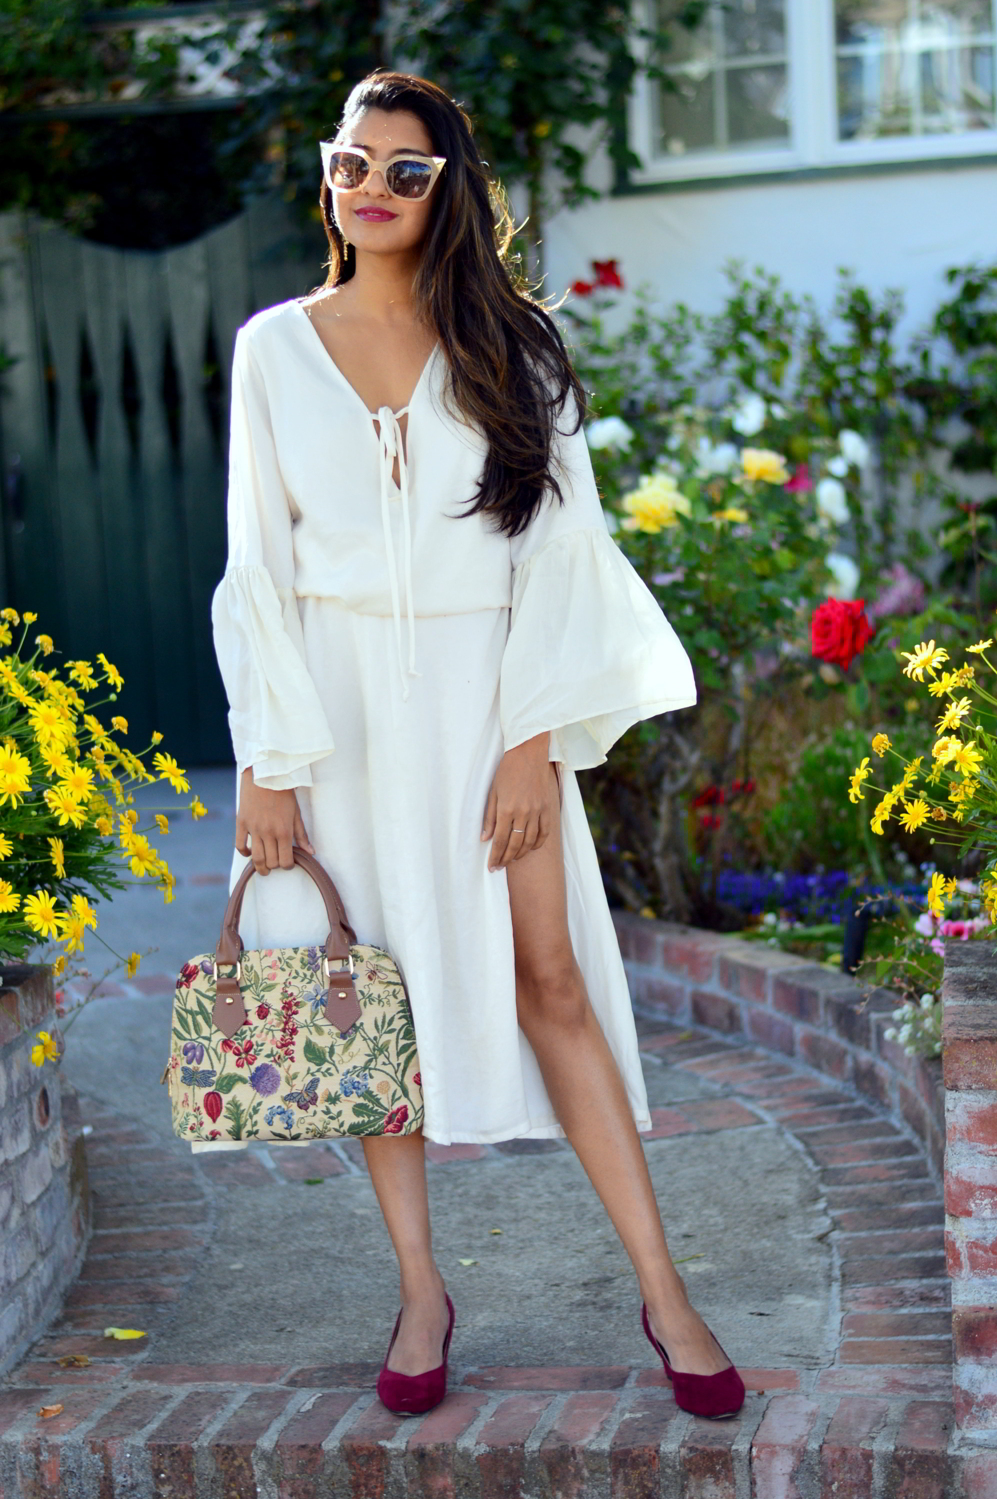 bell-sleeves-white-summer-style-blogger-outfit-dress-floral-bag 7